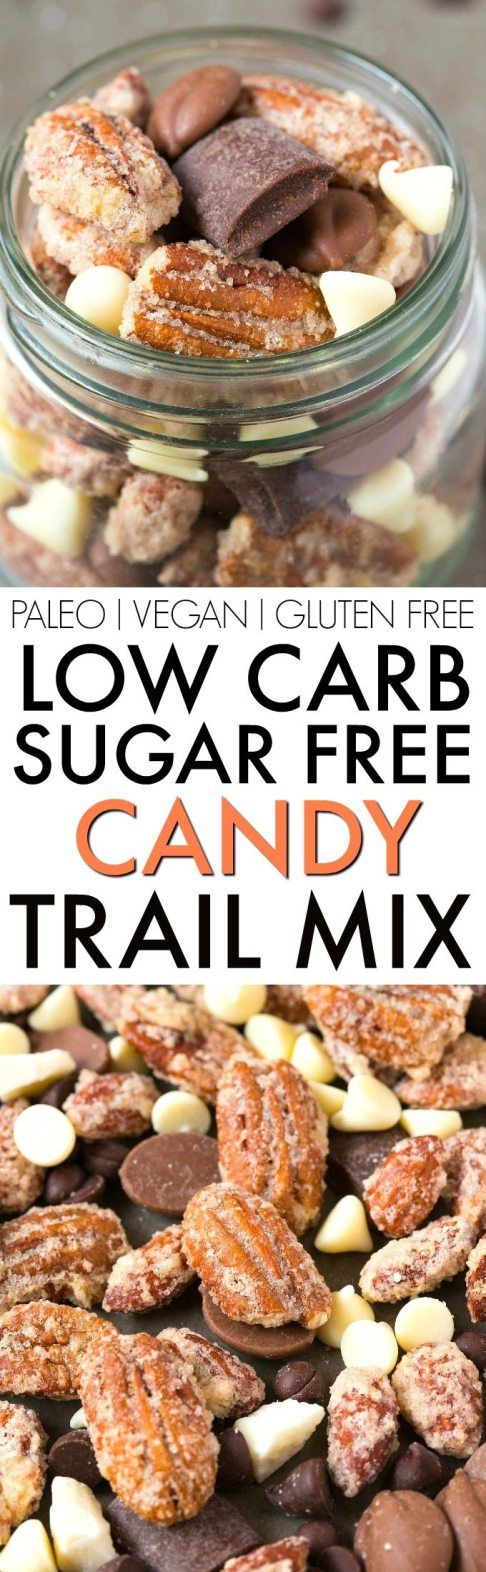 Low Carb Sugar Free Candy Trail Mix (V, GF, Paleo)- A guilt-free trail mix LOADED with all the good stuff- Chocolate chips, chunks, candied nuts and NO boring bits- Perfect for snacking, gifts, DIY, holidays and more! {vegan, gluten free, paleo recipe}- thebigmansworld.com